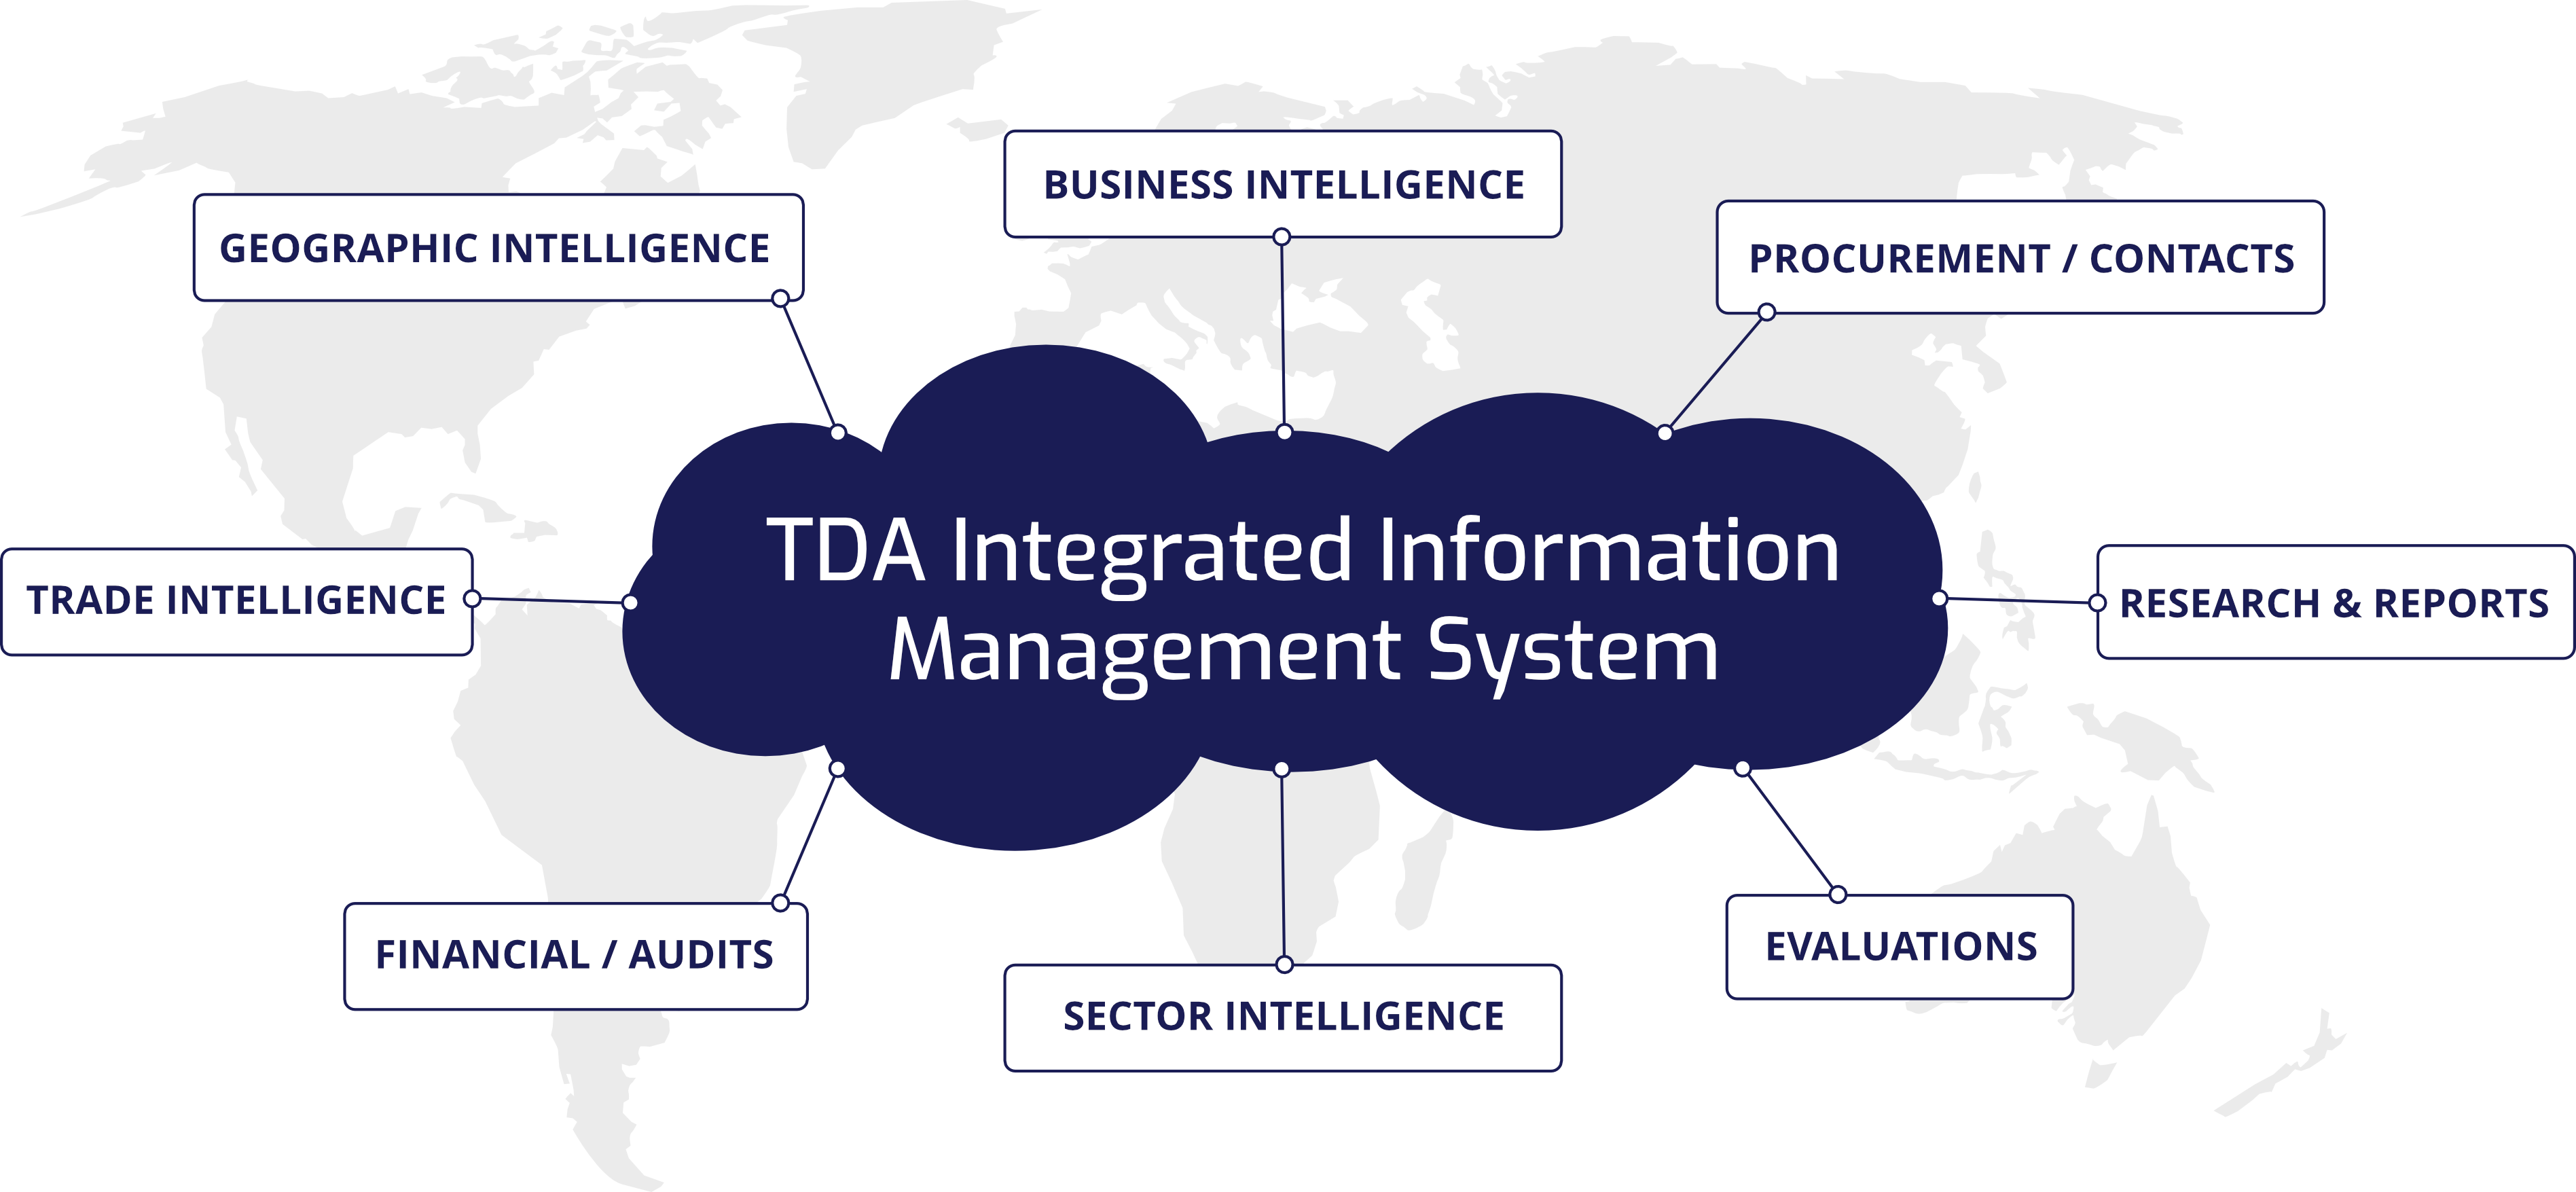 A diagram showing an intergrated information management system